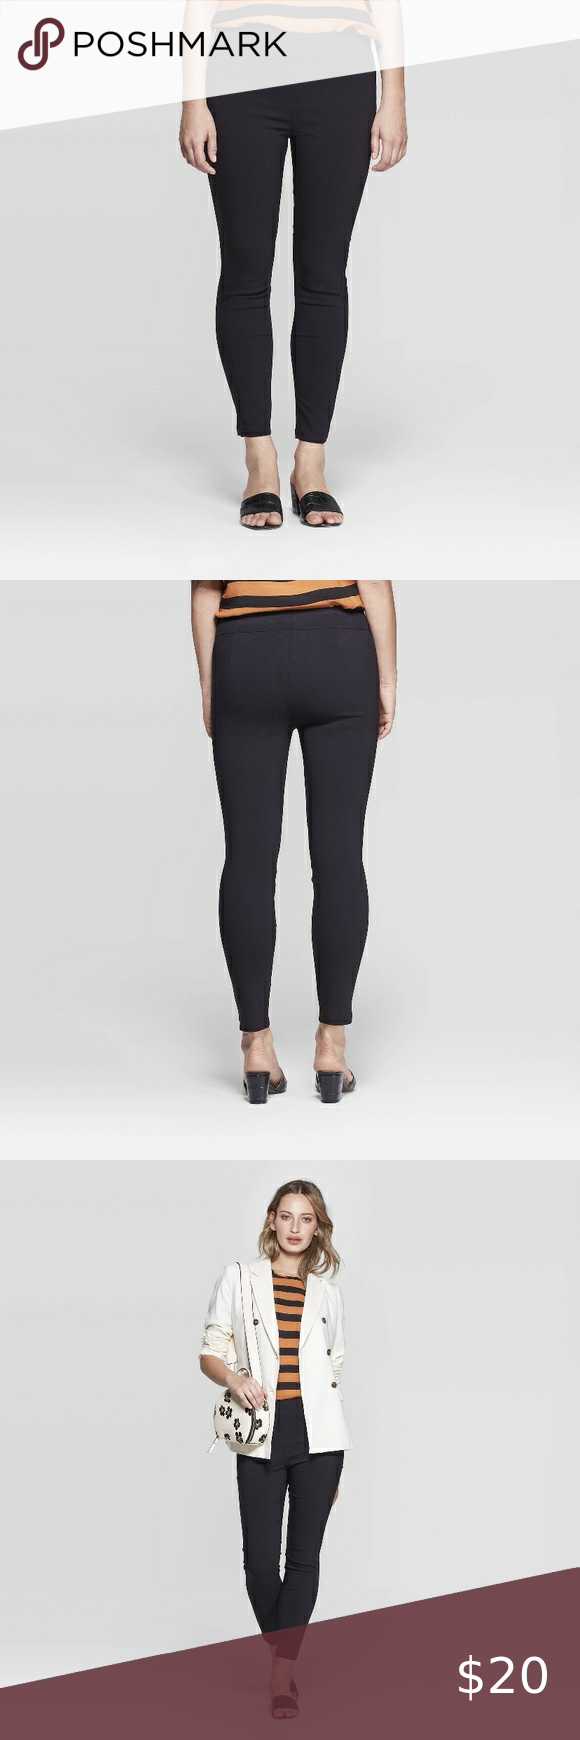 Who What Wear Cropped Black Dress Pants Brand New With Tags Please Let Me Know If You Have Any Questions W Dress Pants Skinny Cropped Pants Green Dress Pants [ 1740 x 580 Pixel ]